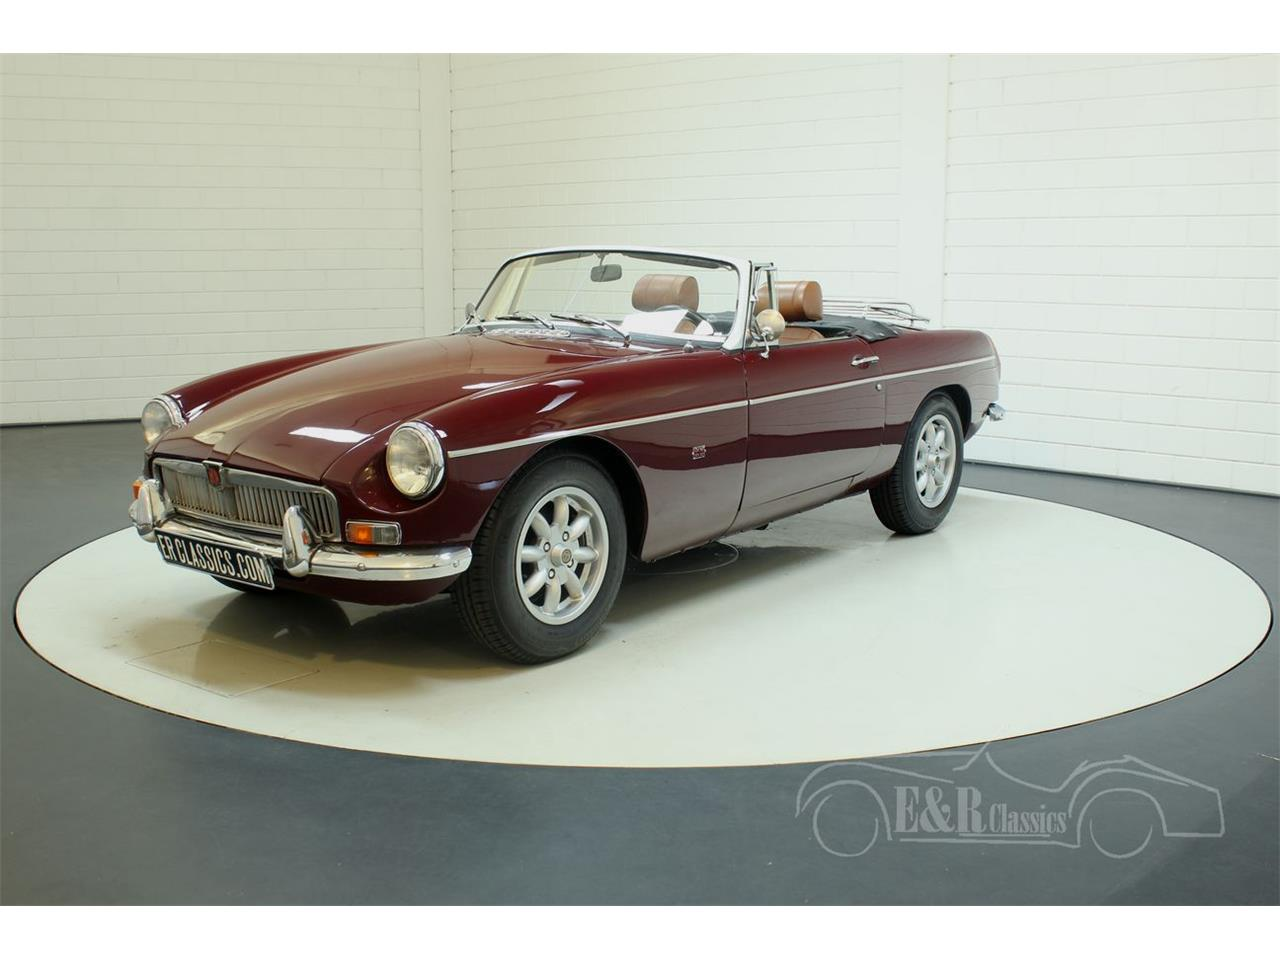 Large Picture of 1976 MGB located in Noord-Brabant - $22,250.00 Offered by E & R Classics - Q45I